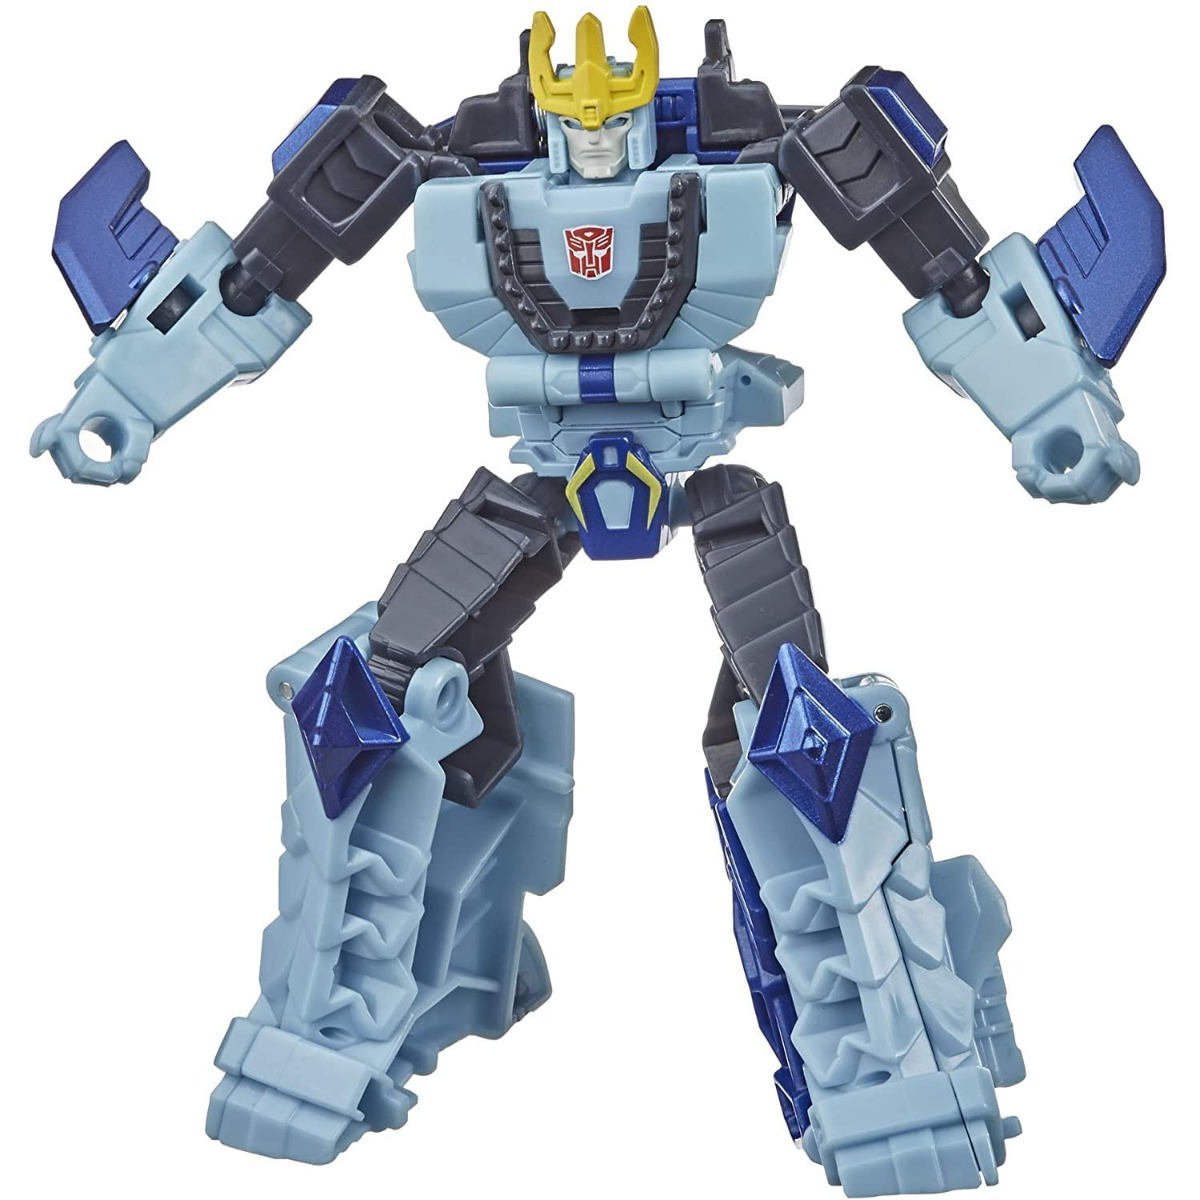 Figurina Transformers Cyberverse Action Attackers Warrior, Hammerbyte E7089